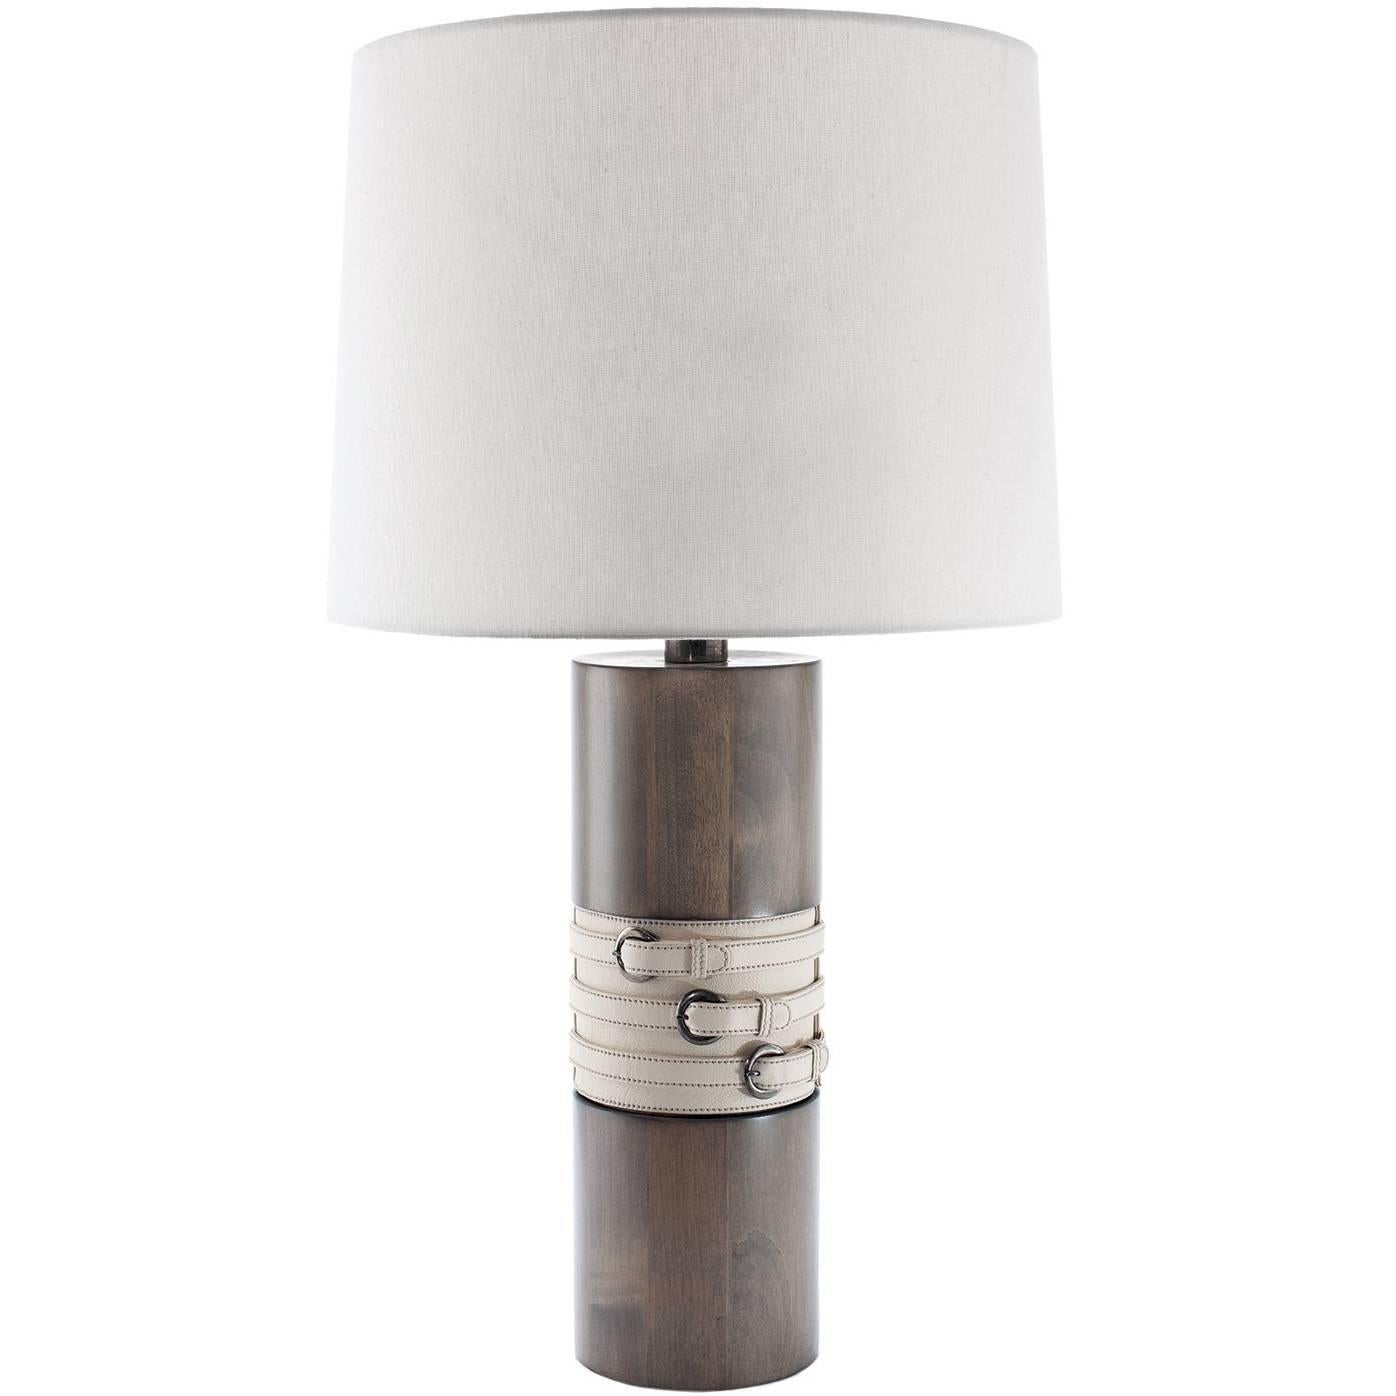 Anouk Table Lamp in Wood with Leather Detail by Carbonell Design